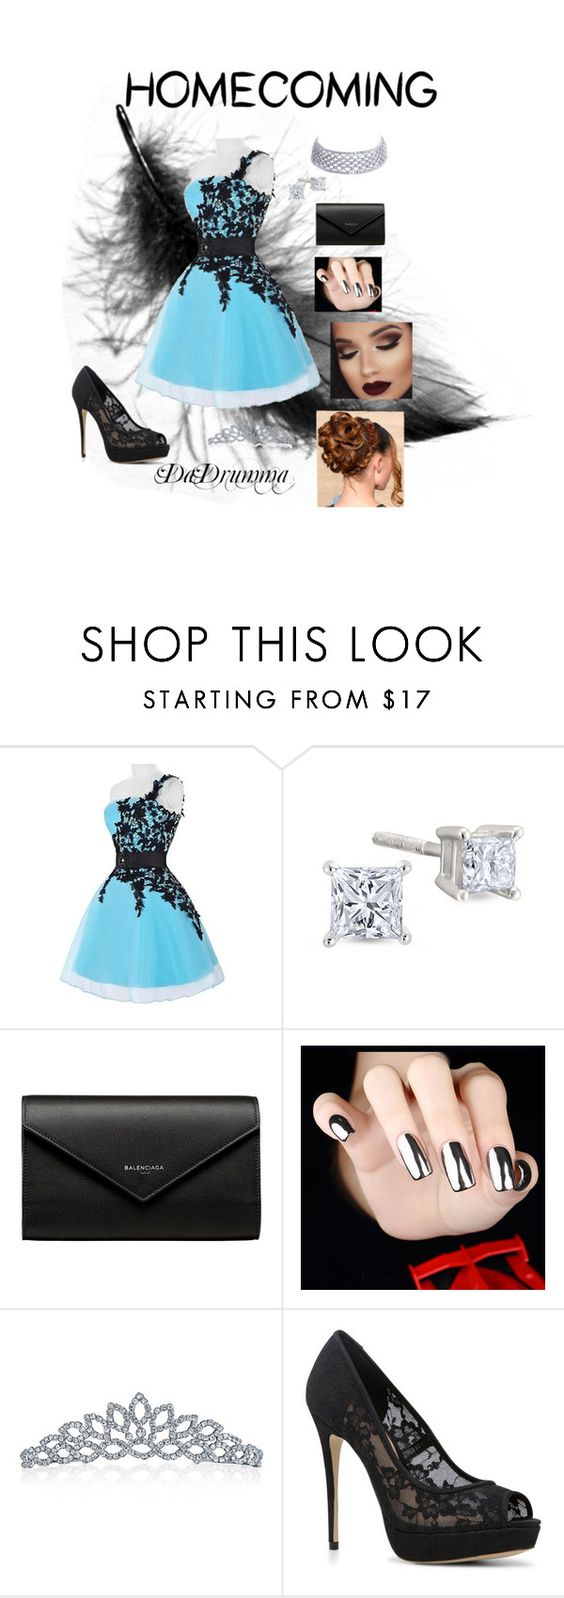 """Homecoming Queen"" by dadrumma on Polyvore featuring Balenciaga, Bling Jewelry, ALDO and Homecoming"